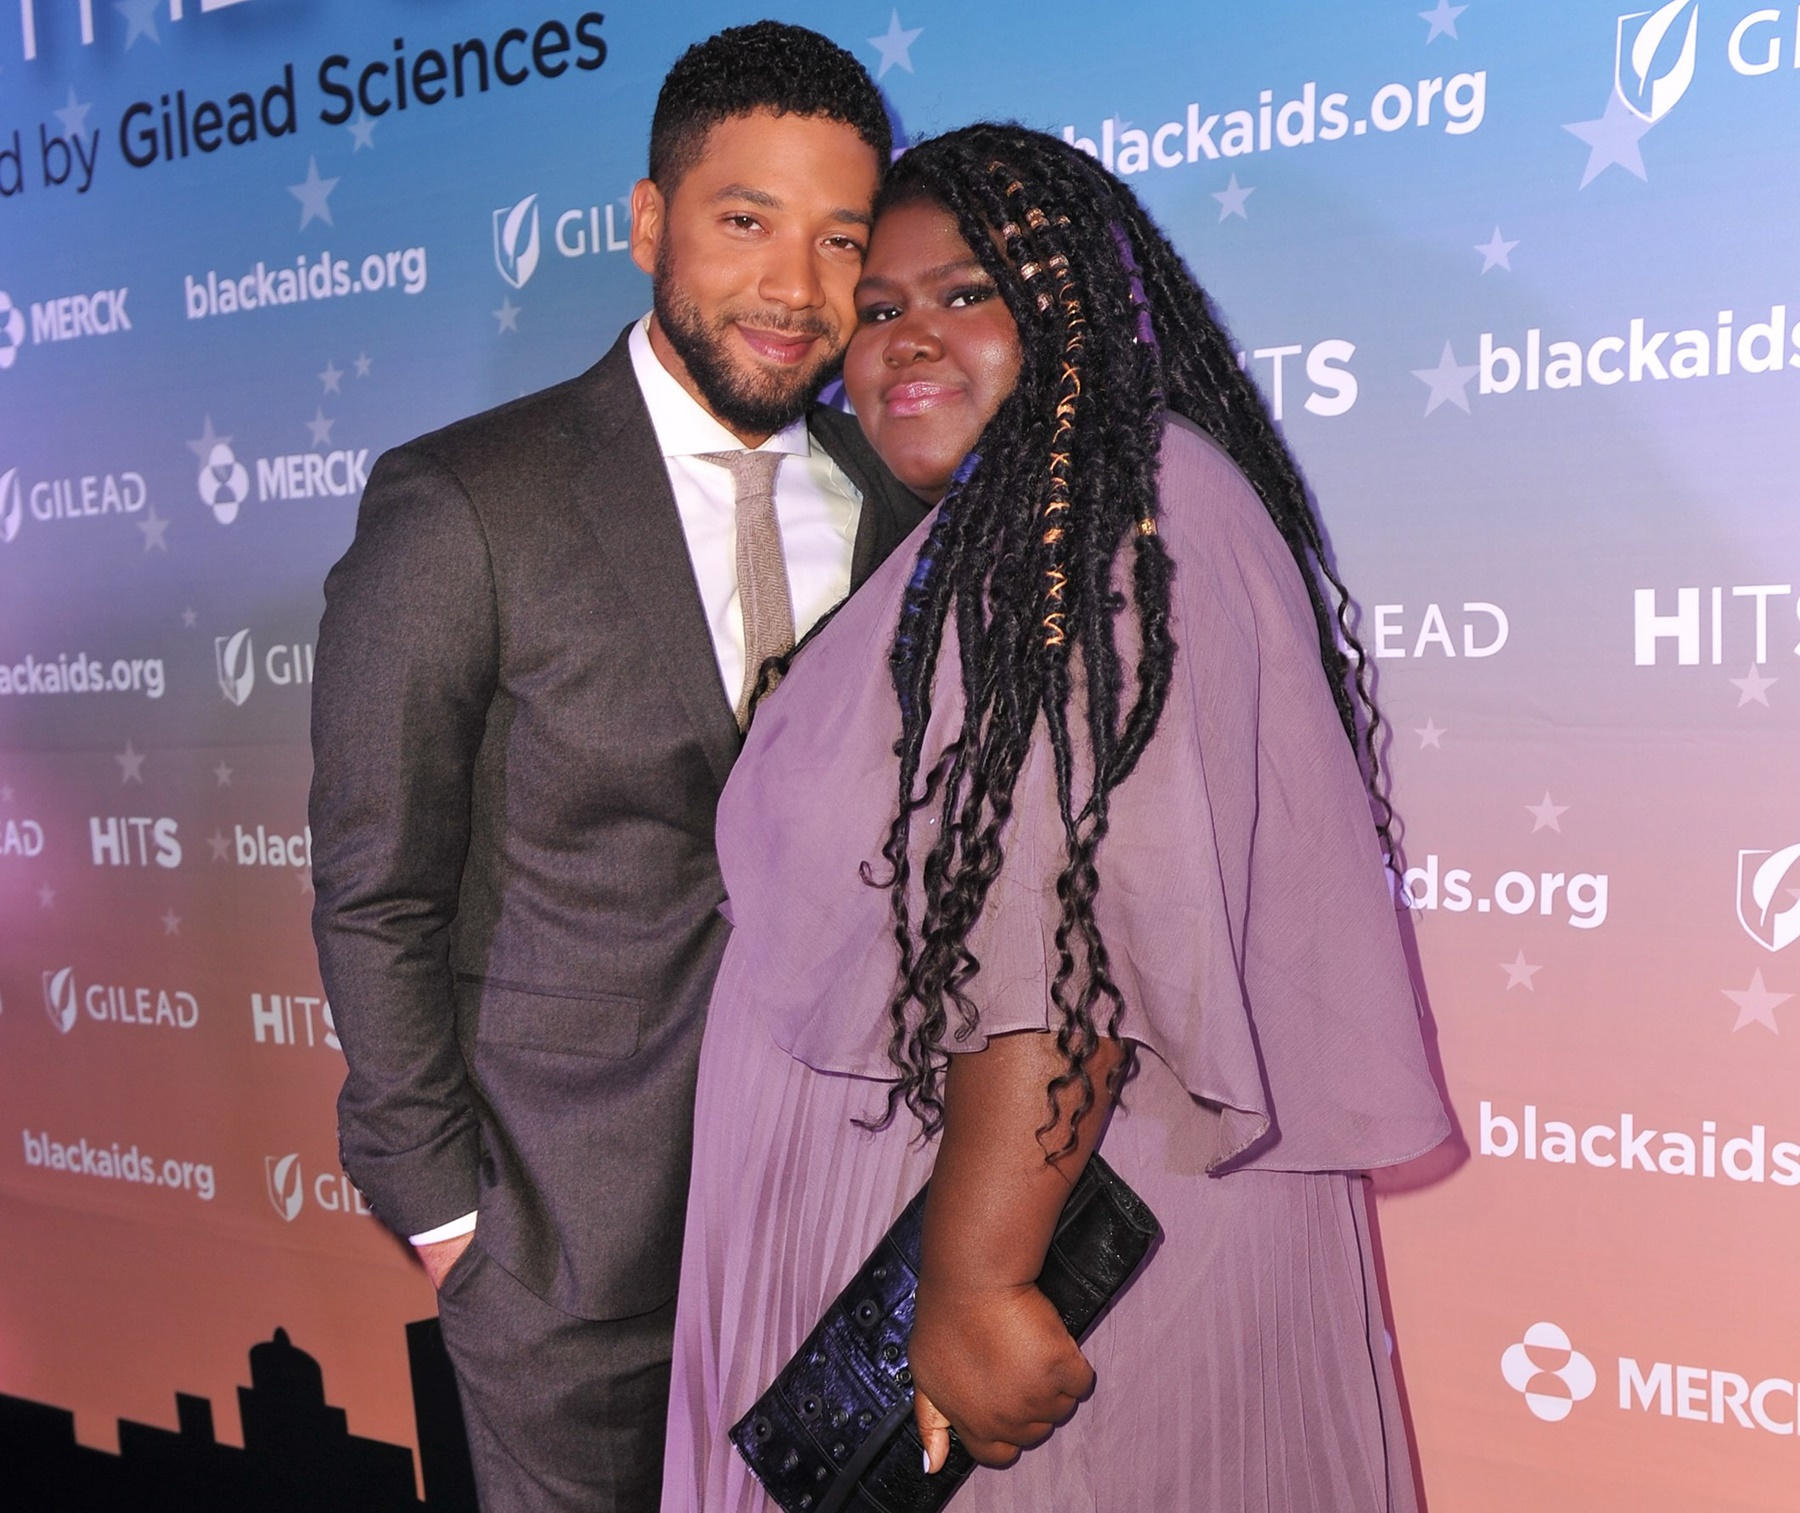 Jussie Smollett Reportedly Refused to Turn Over Phone to Police Following Attack